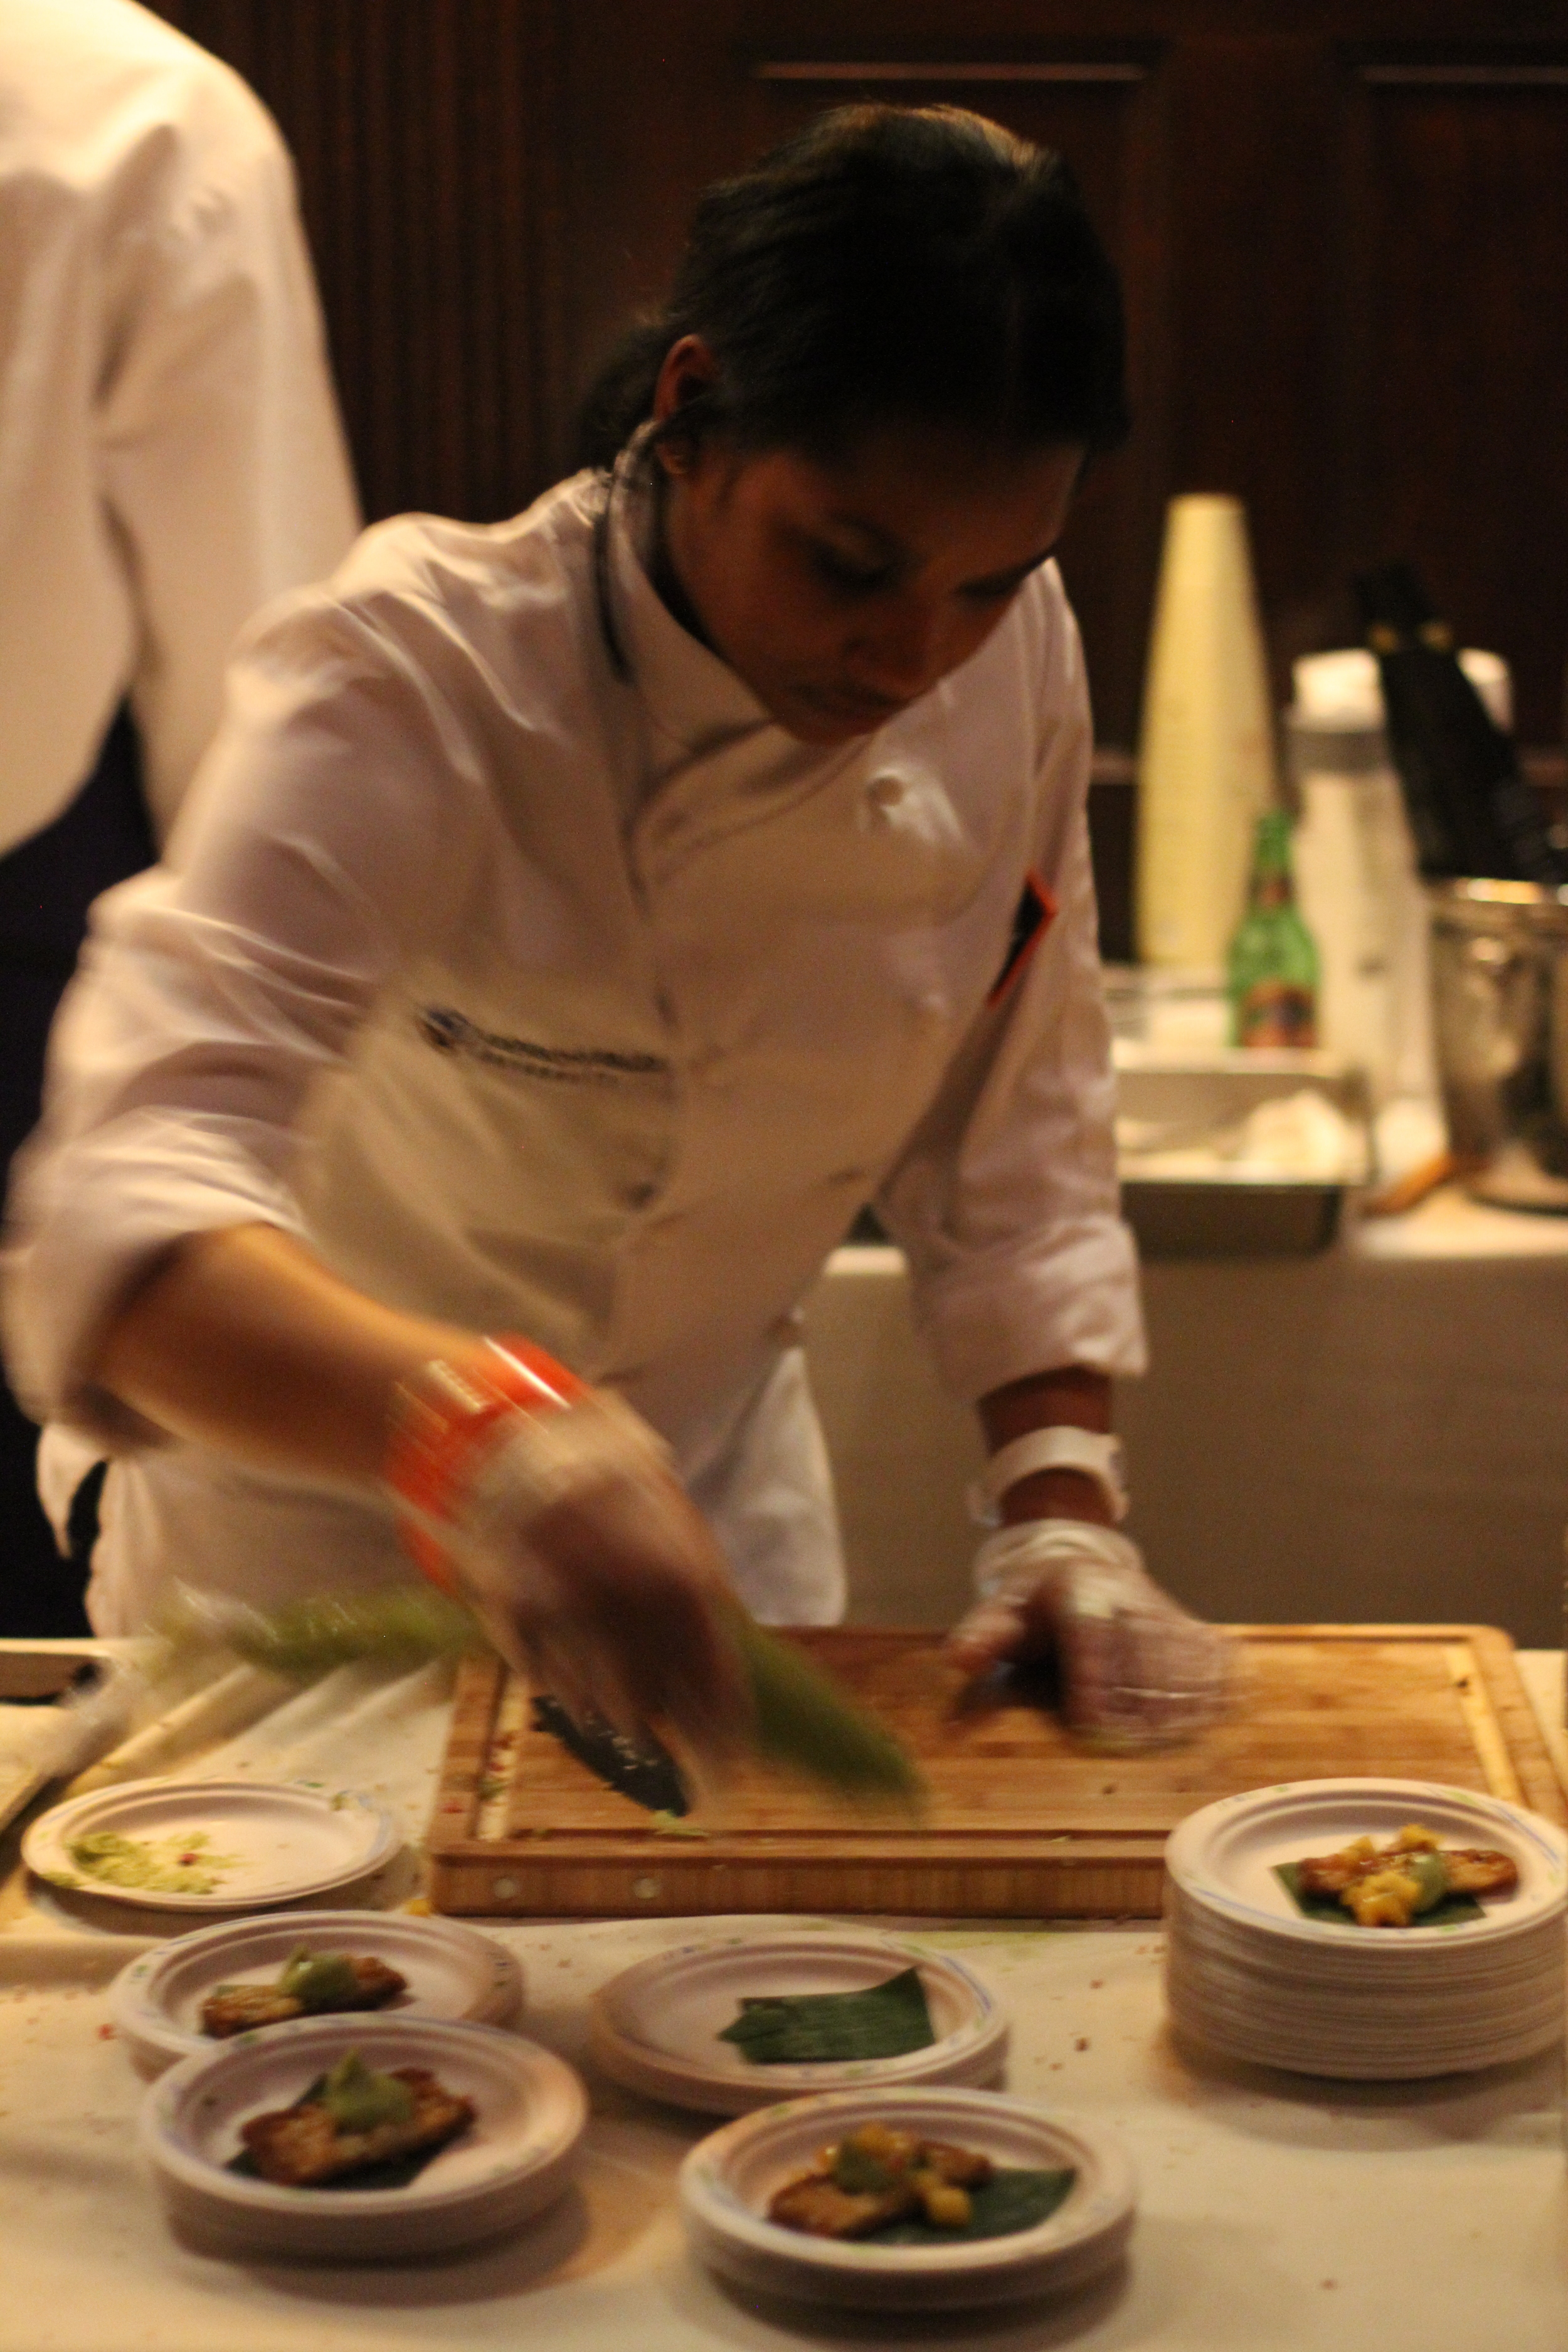 Plating food non-stop!